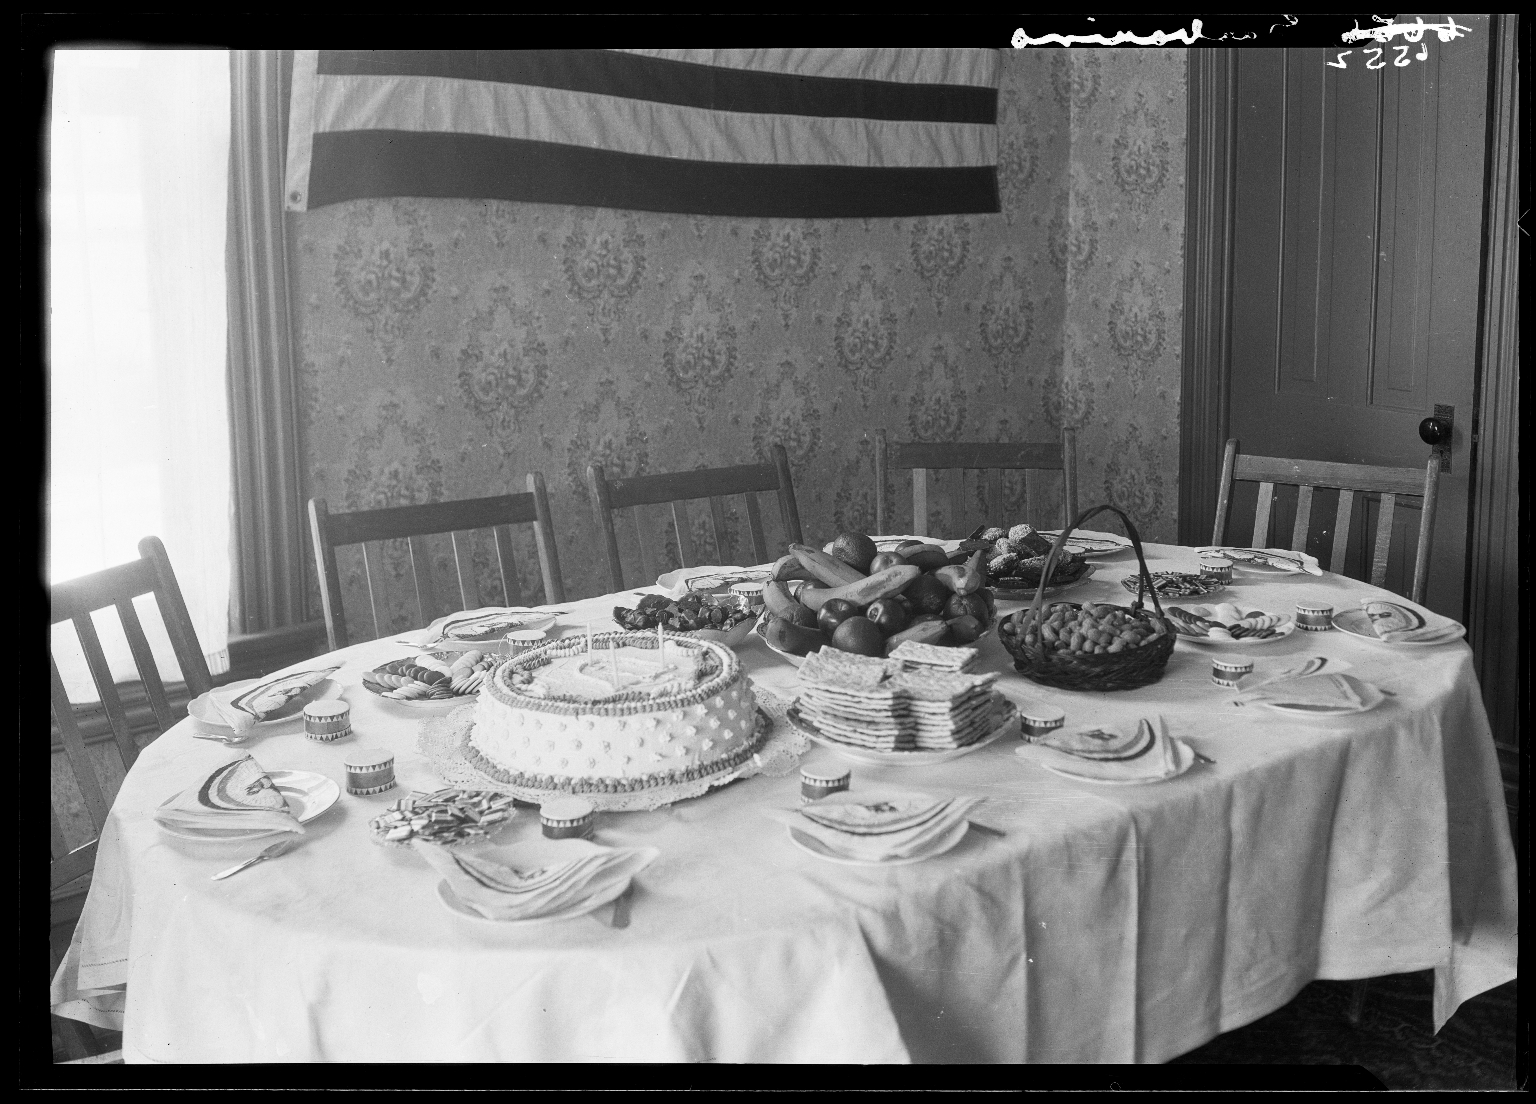 Belshe Garbarino's table set with food, with a group portrait of 10 children